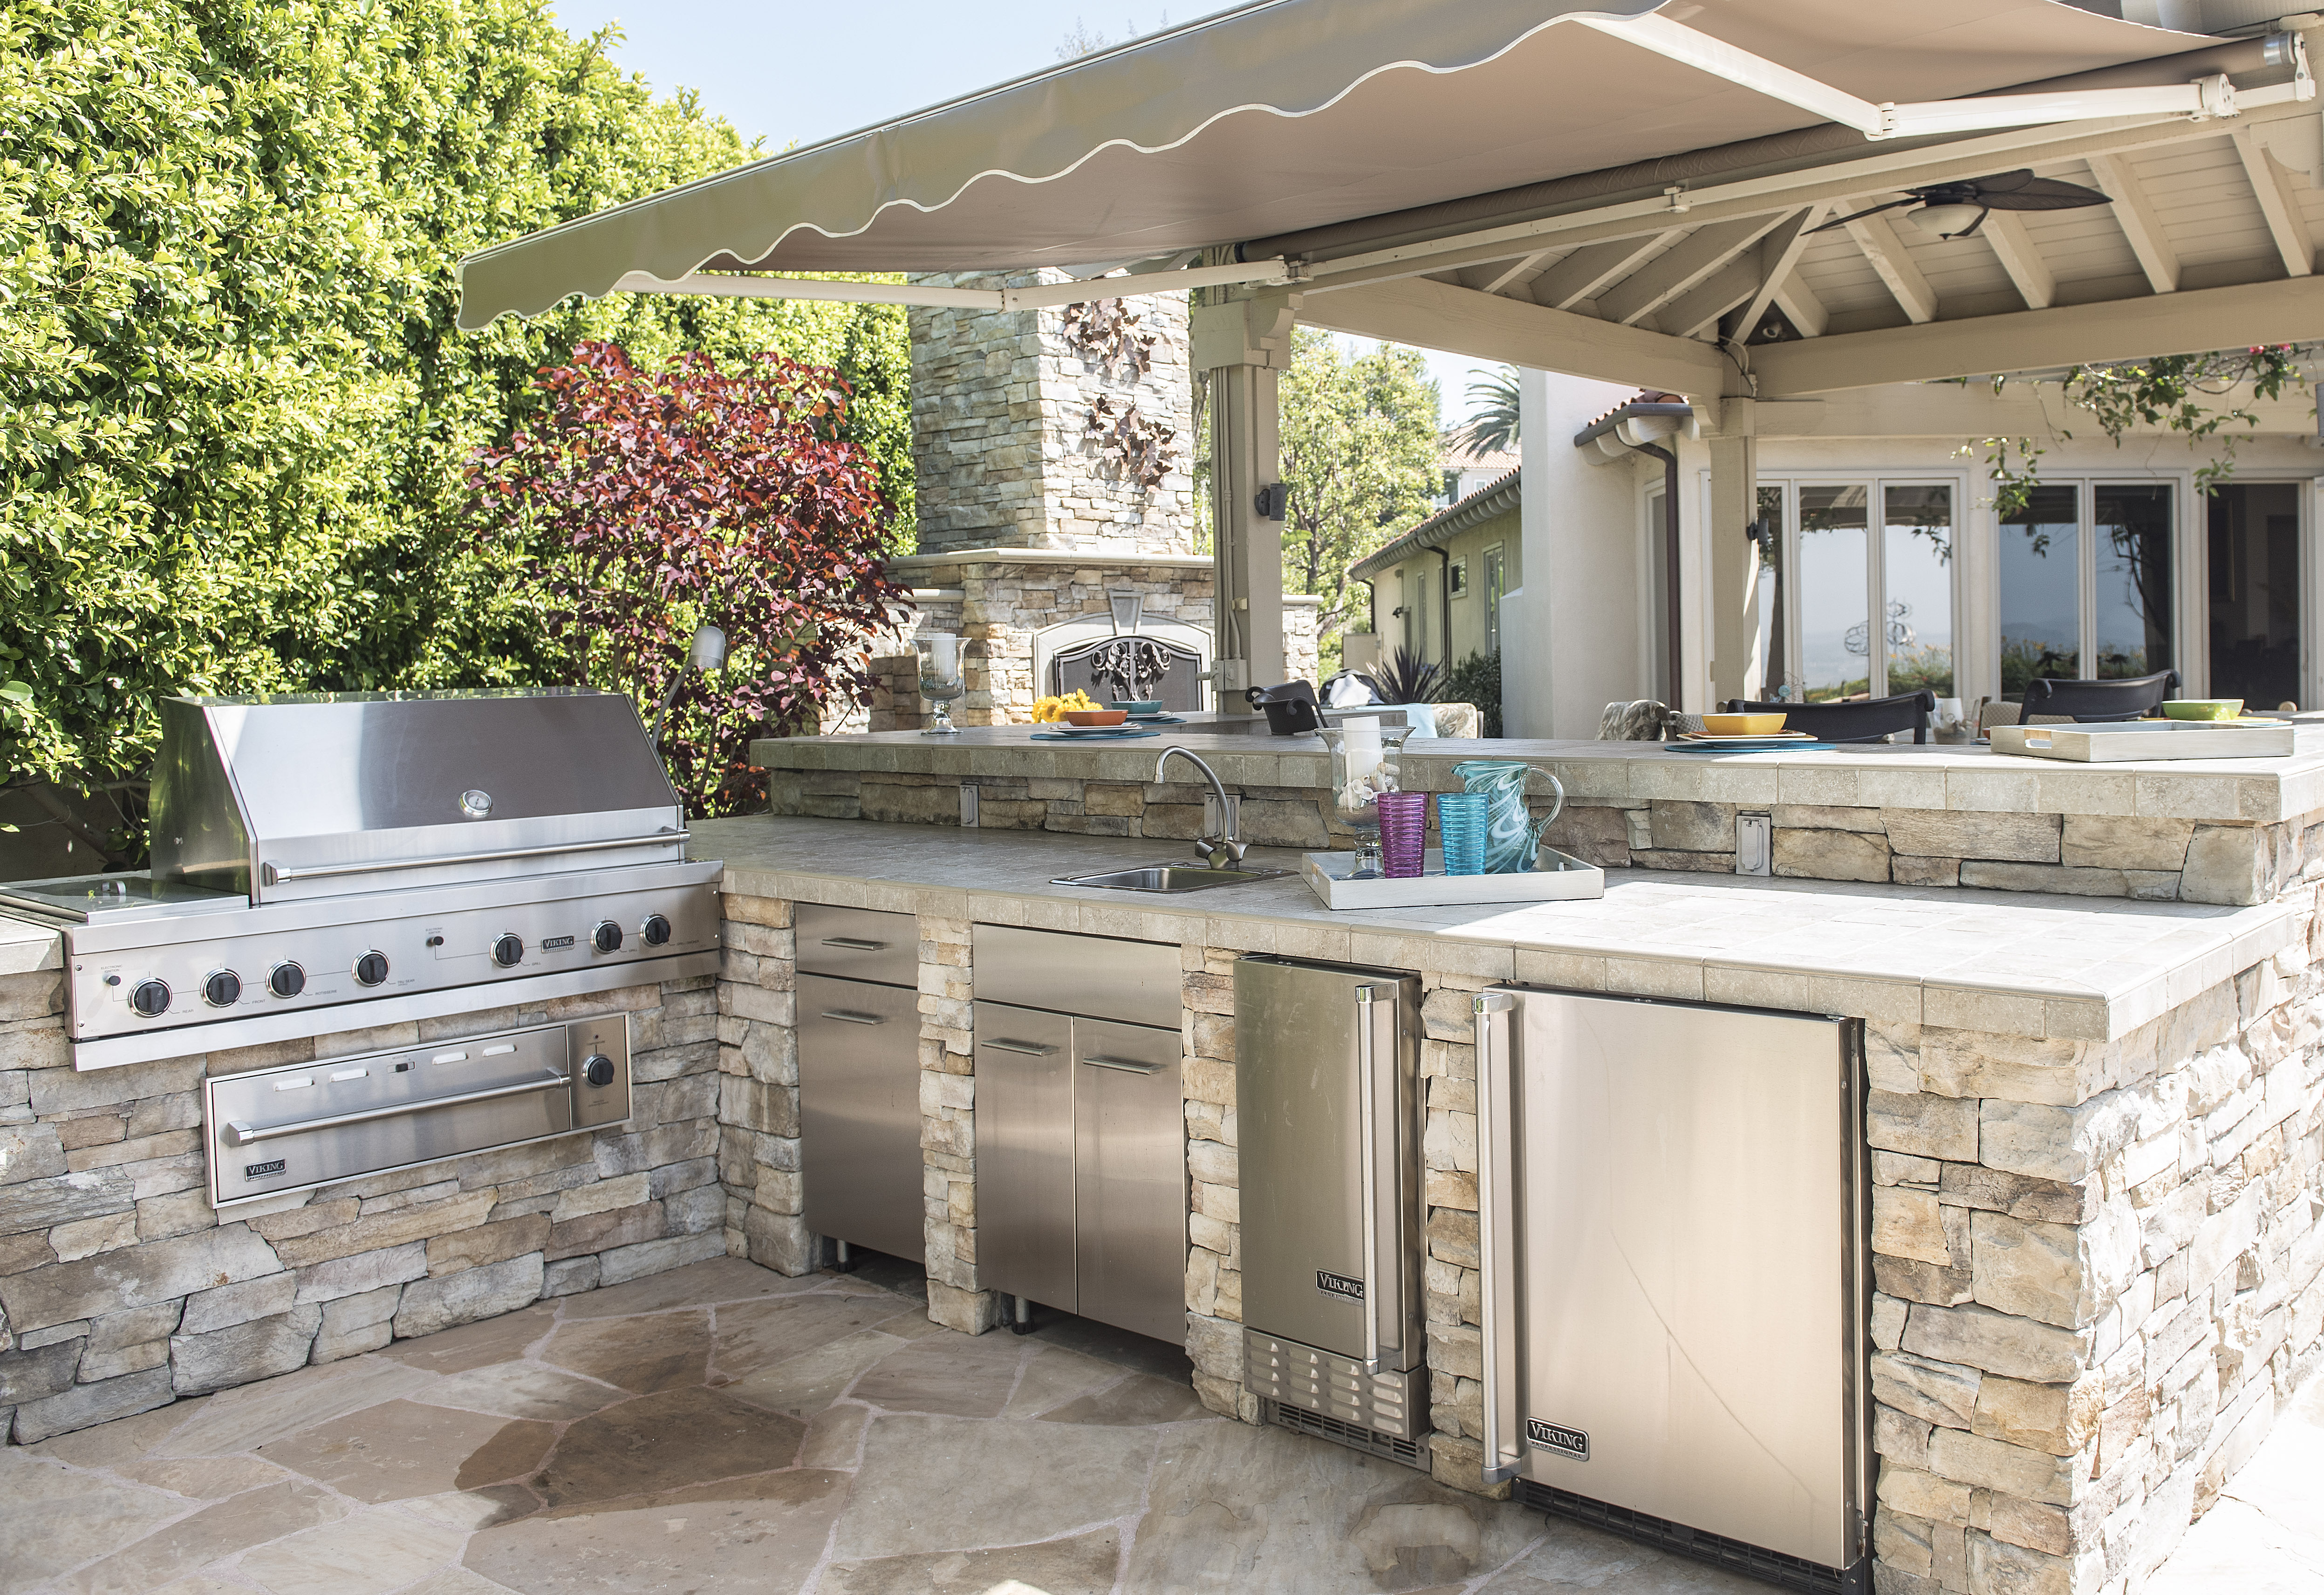 An outdoor kitchen at the home of Mary and Michael Fry in Yorba Linda, on  Friday, June 2, 2017. (Photo by Nick Agro, Orange County Register/SCNG)